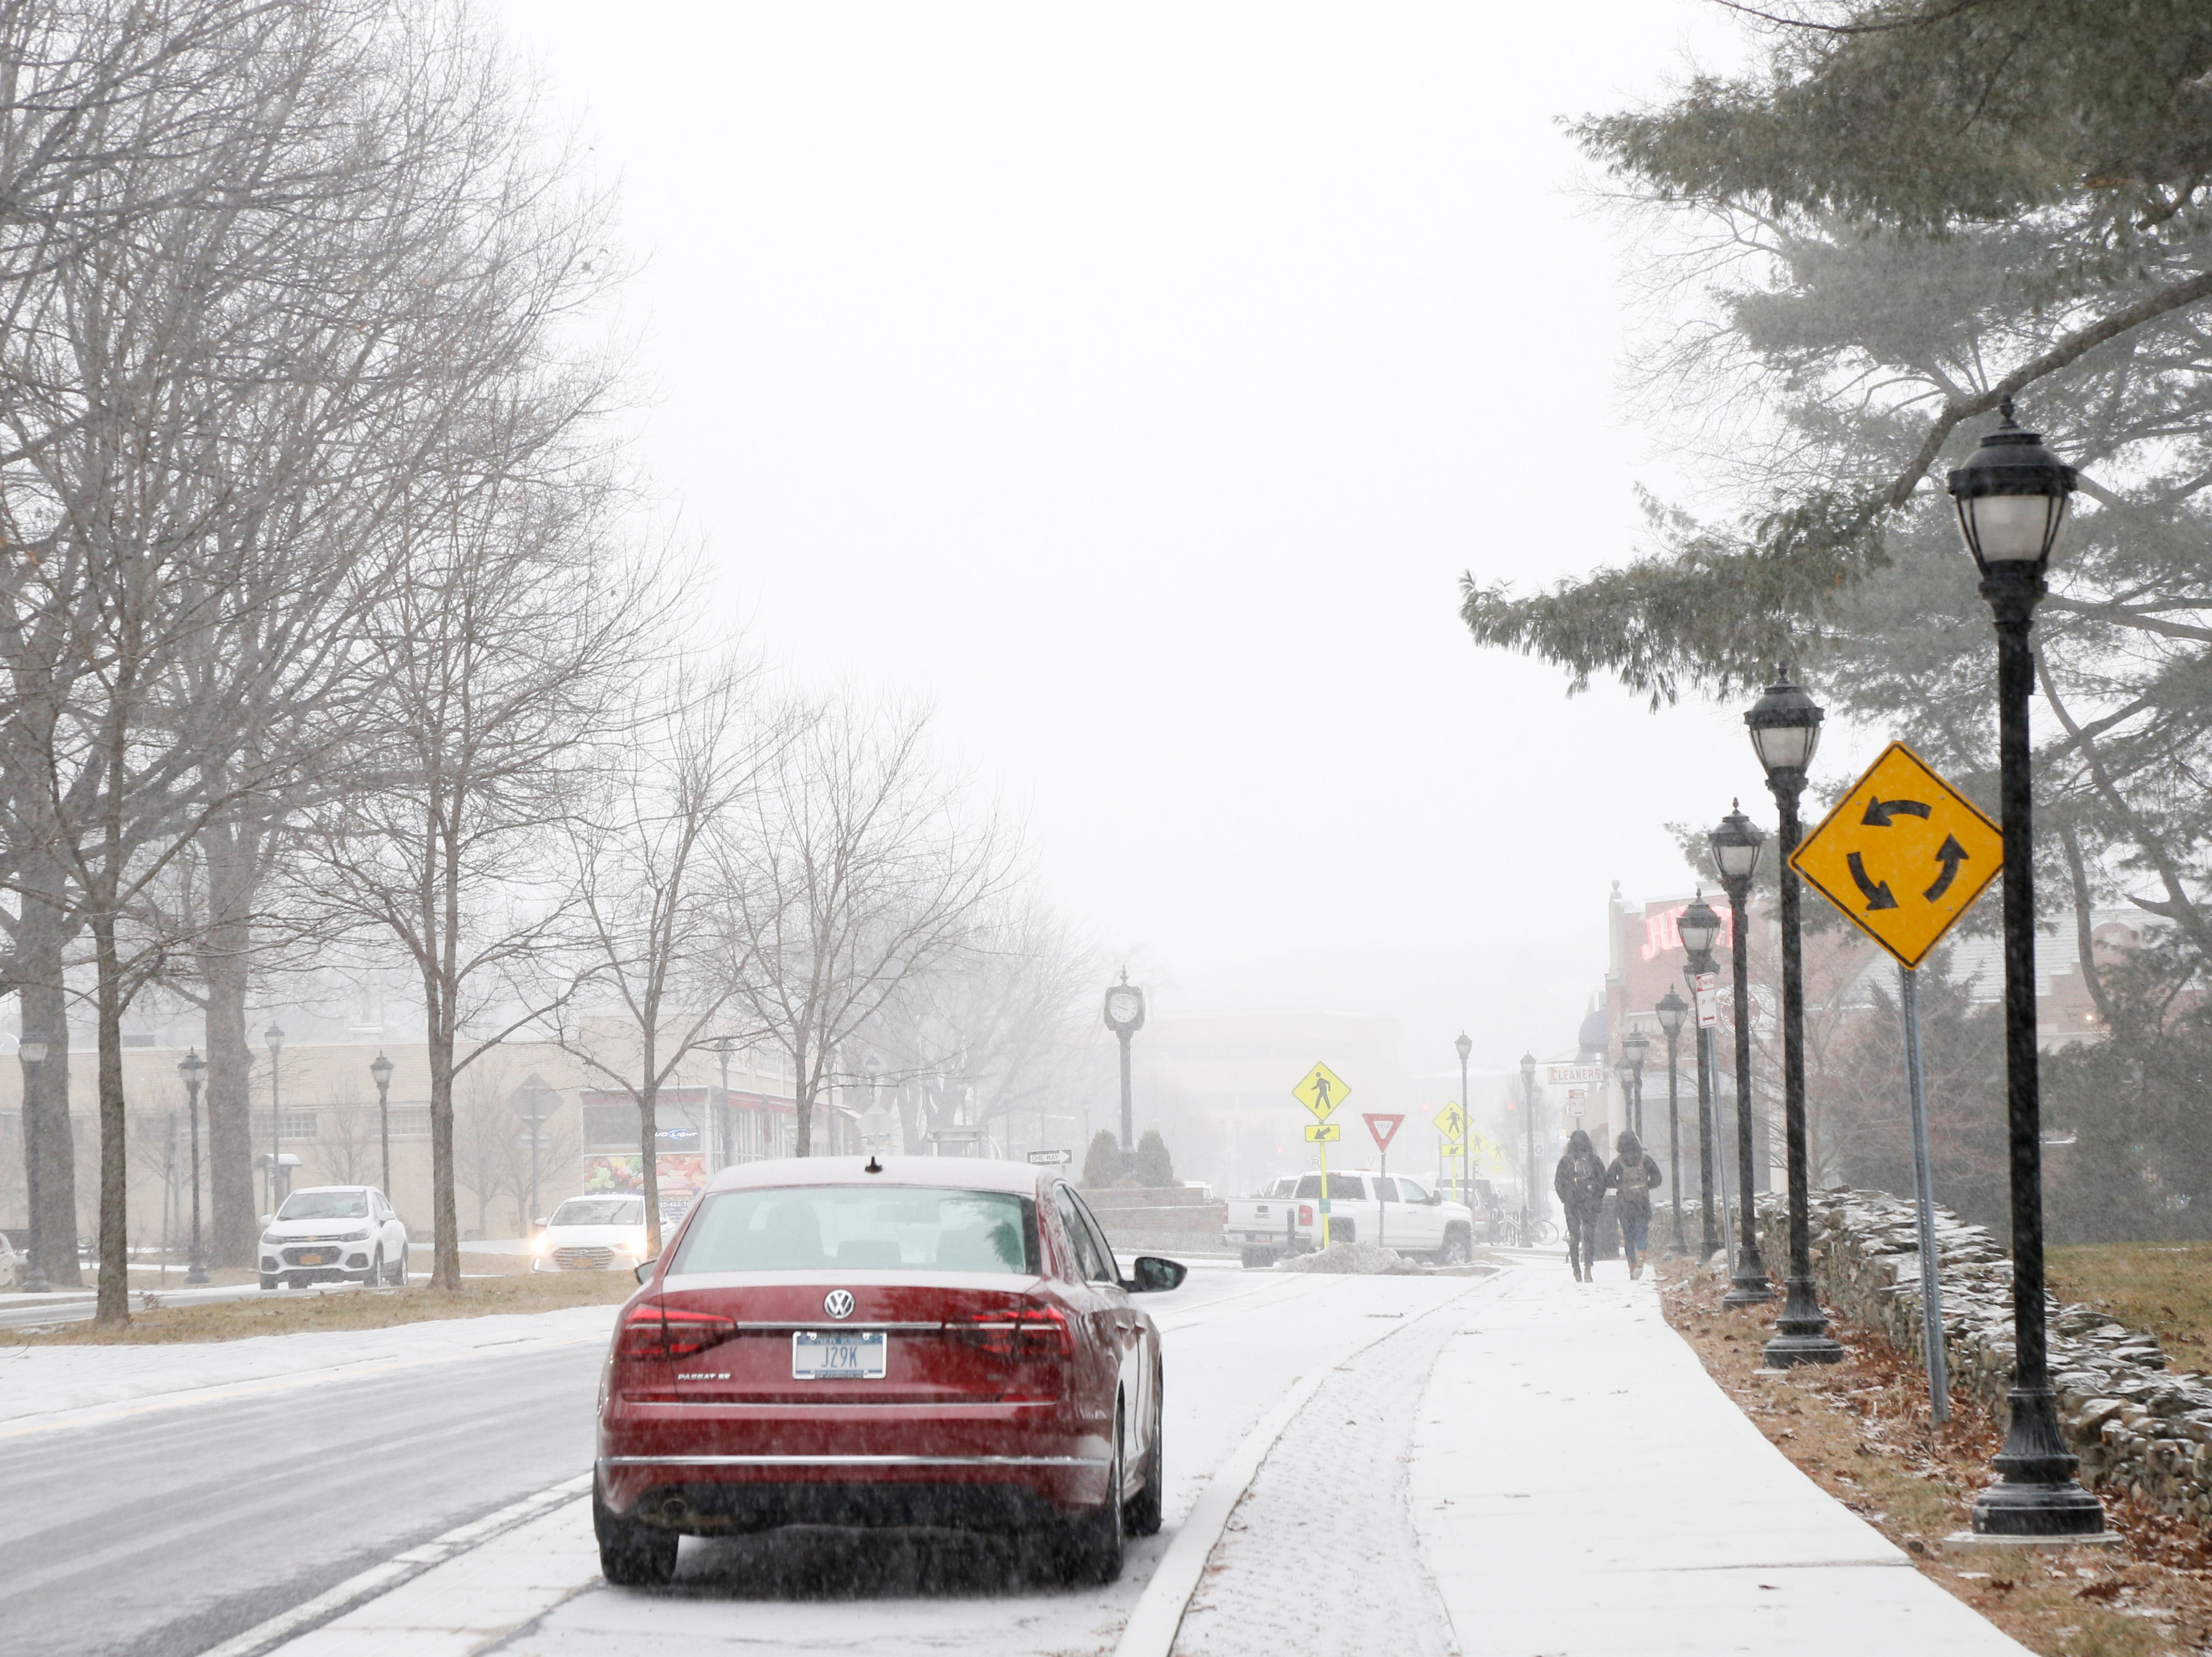 Snow falls as traffic moves along Raymond Avenue in the Town of Poughkeepsie on February 12, 2019.